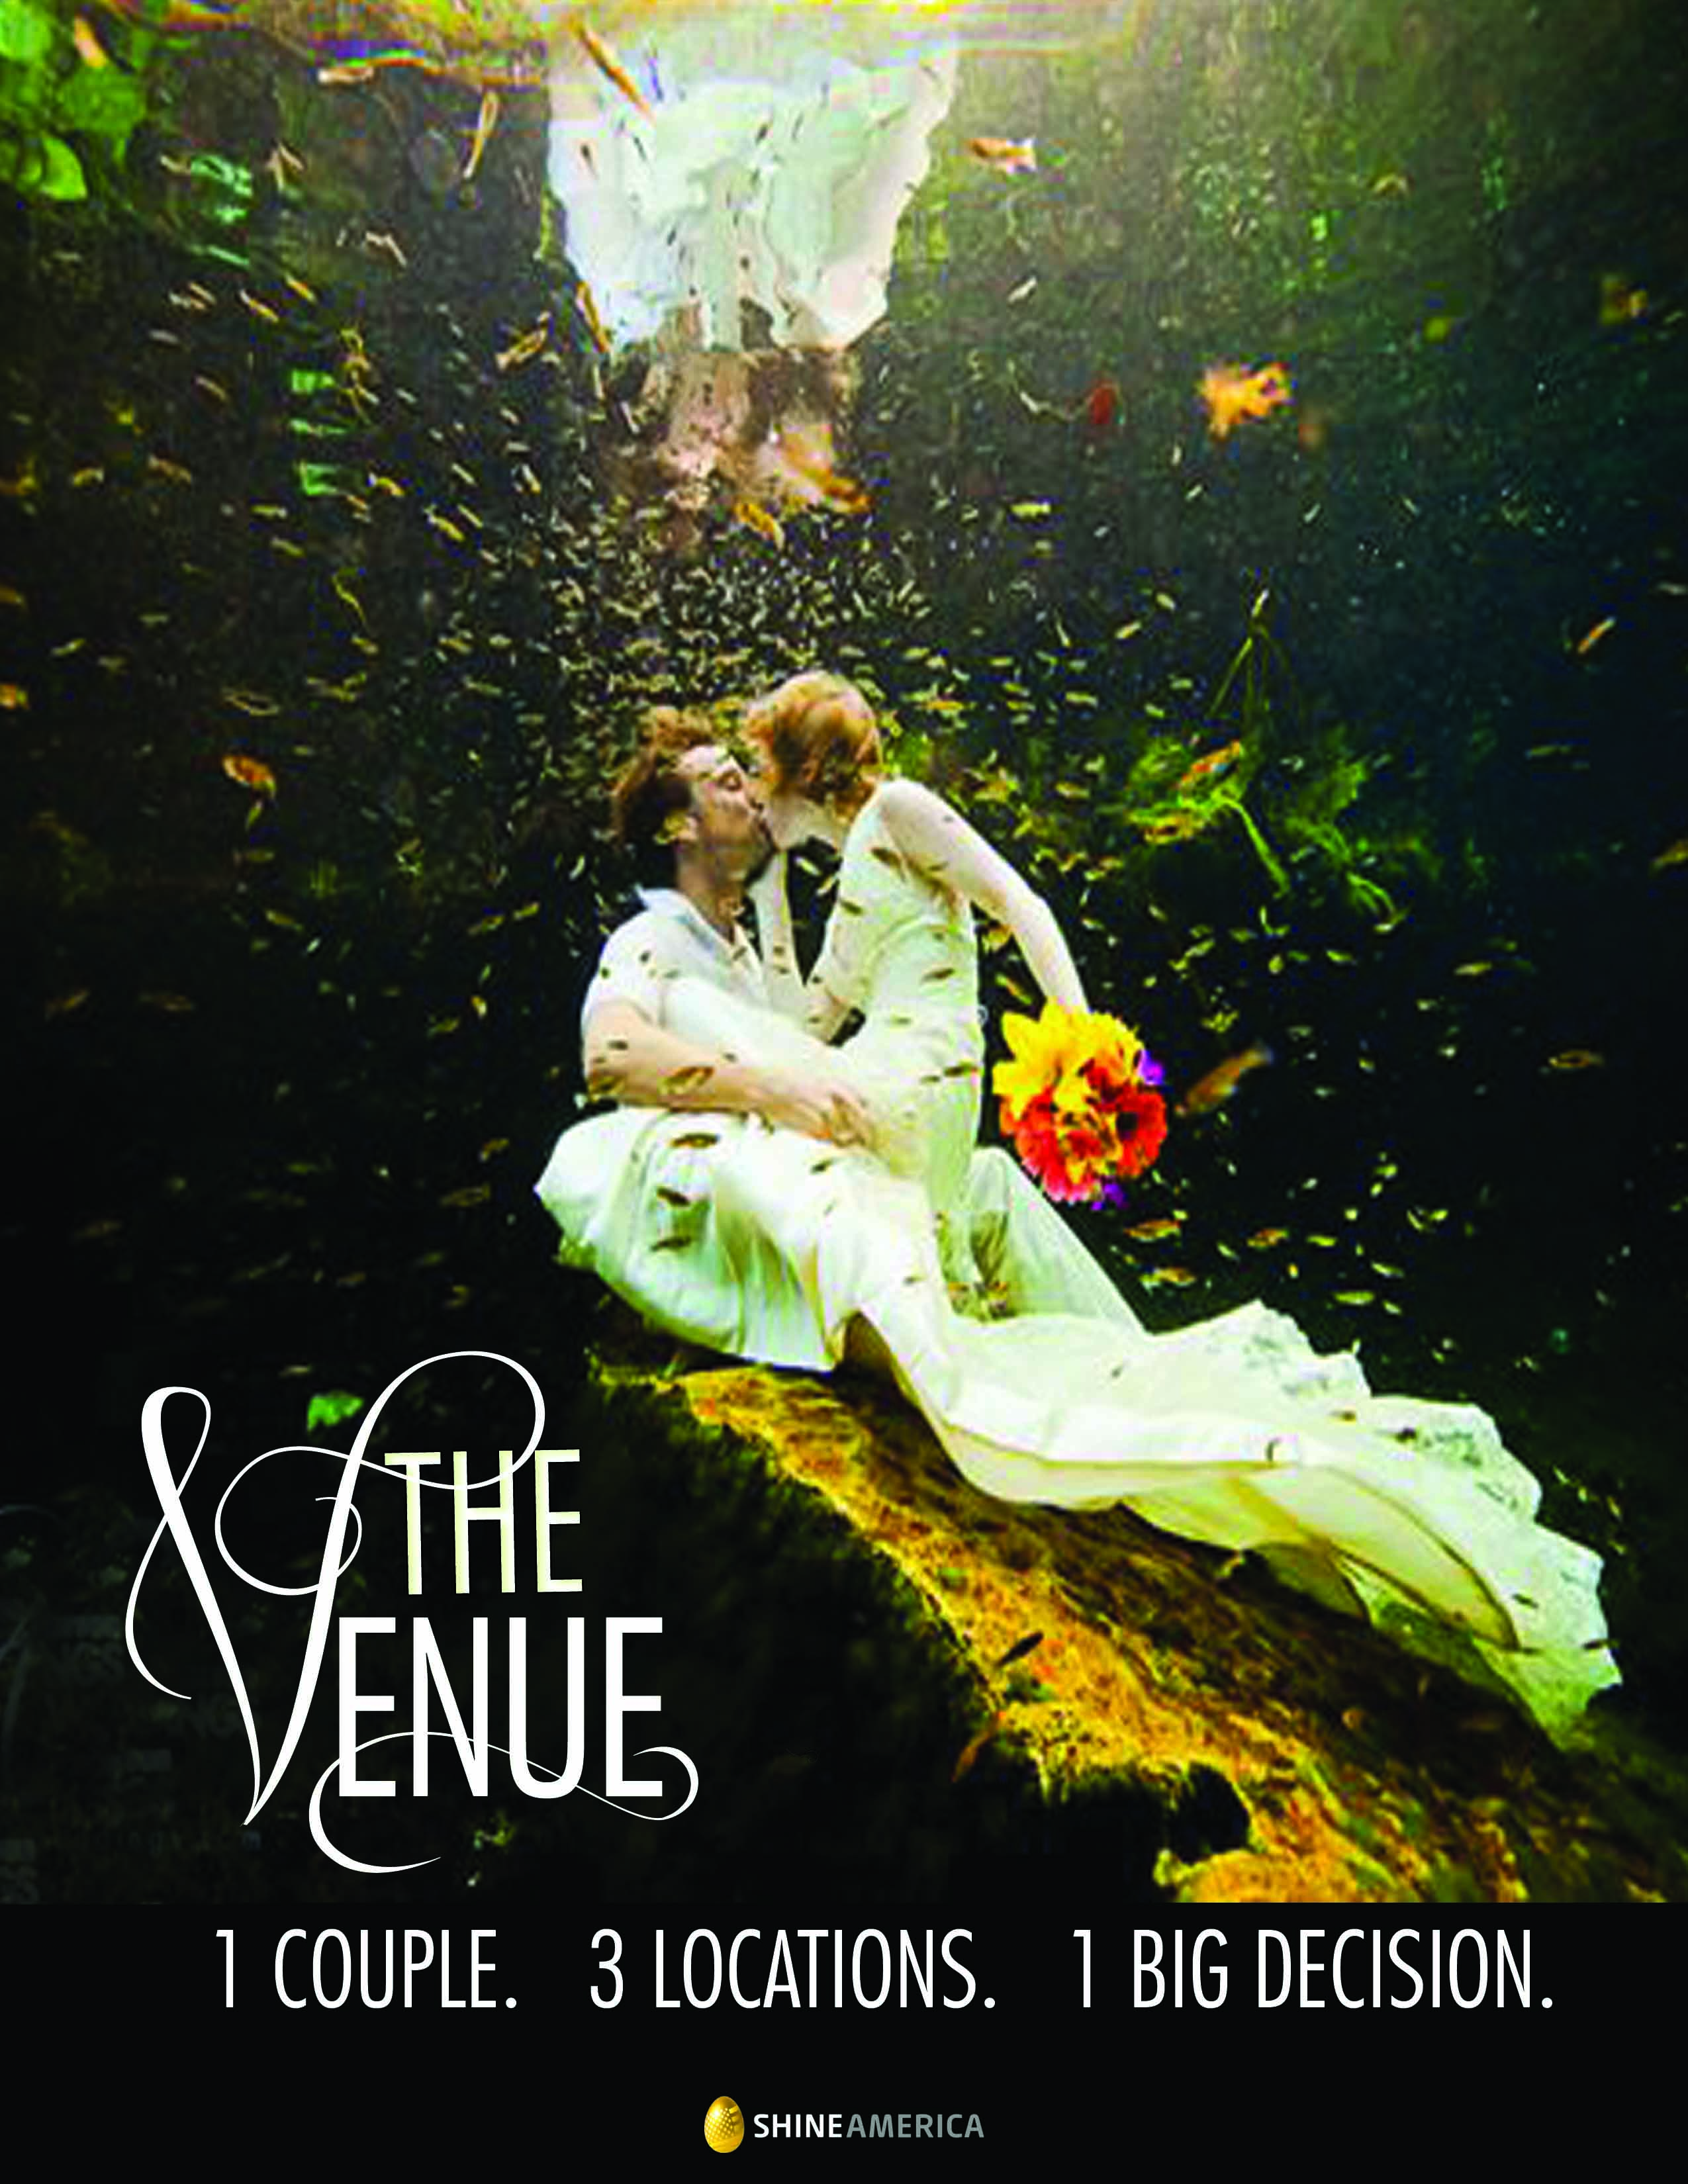 TheVenue - Reality Show